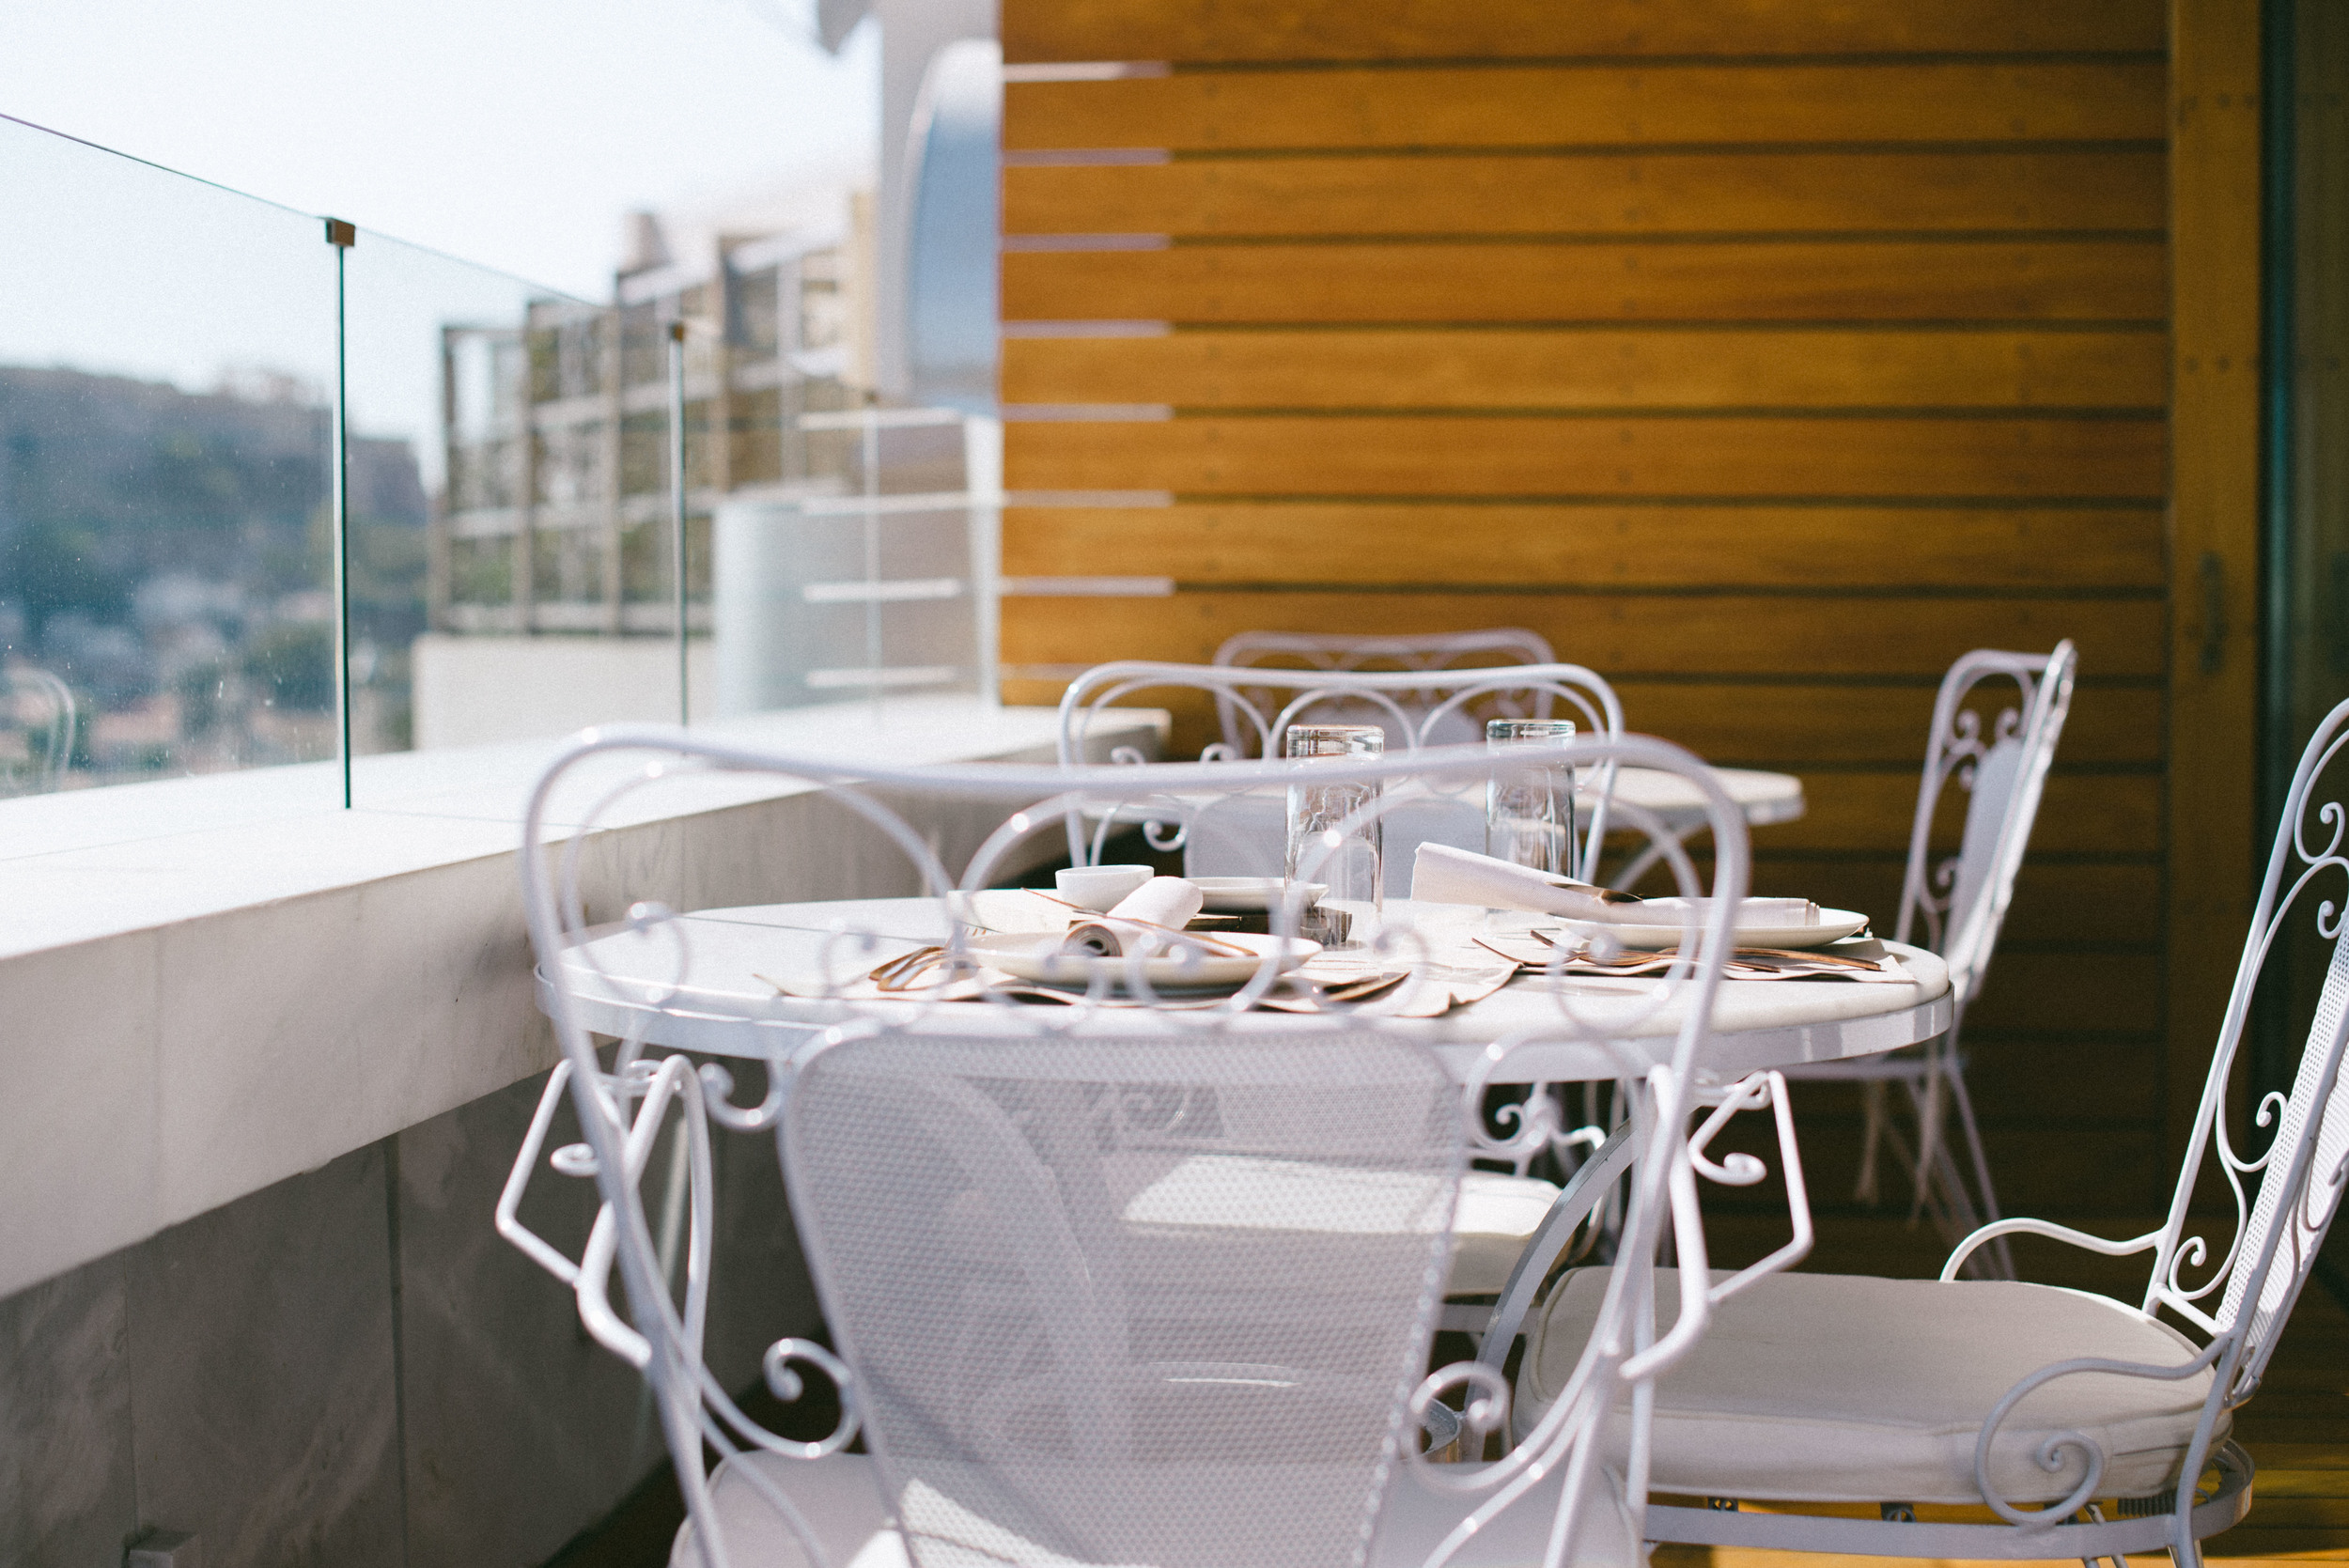 Enjoy lunch or a cold drink at the terrace of the Art Lounge restaurant